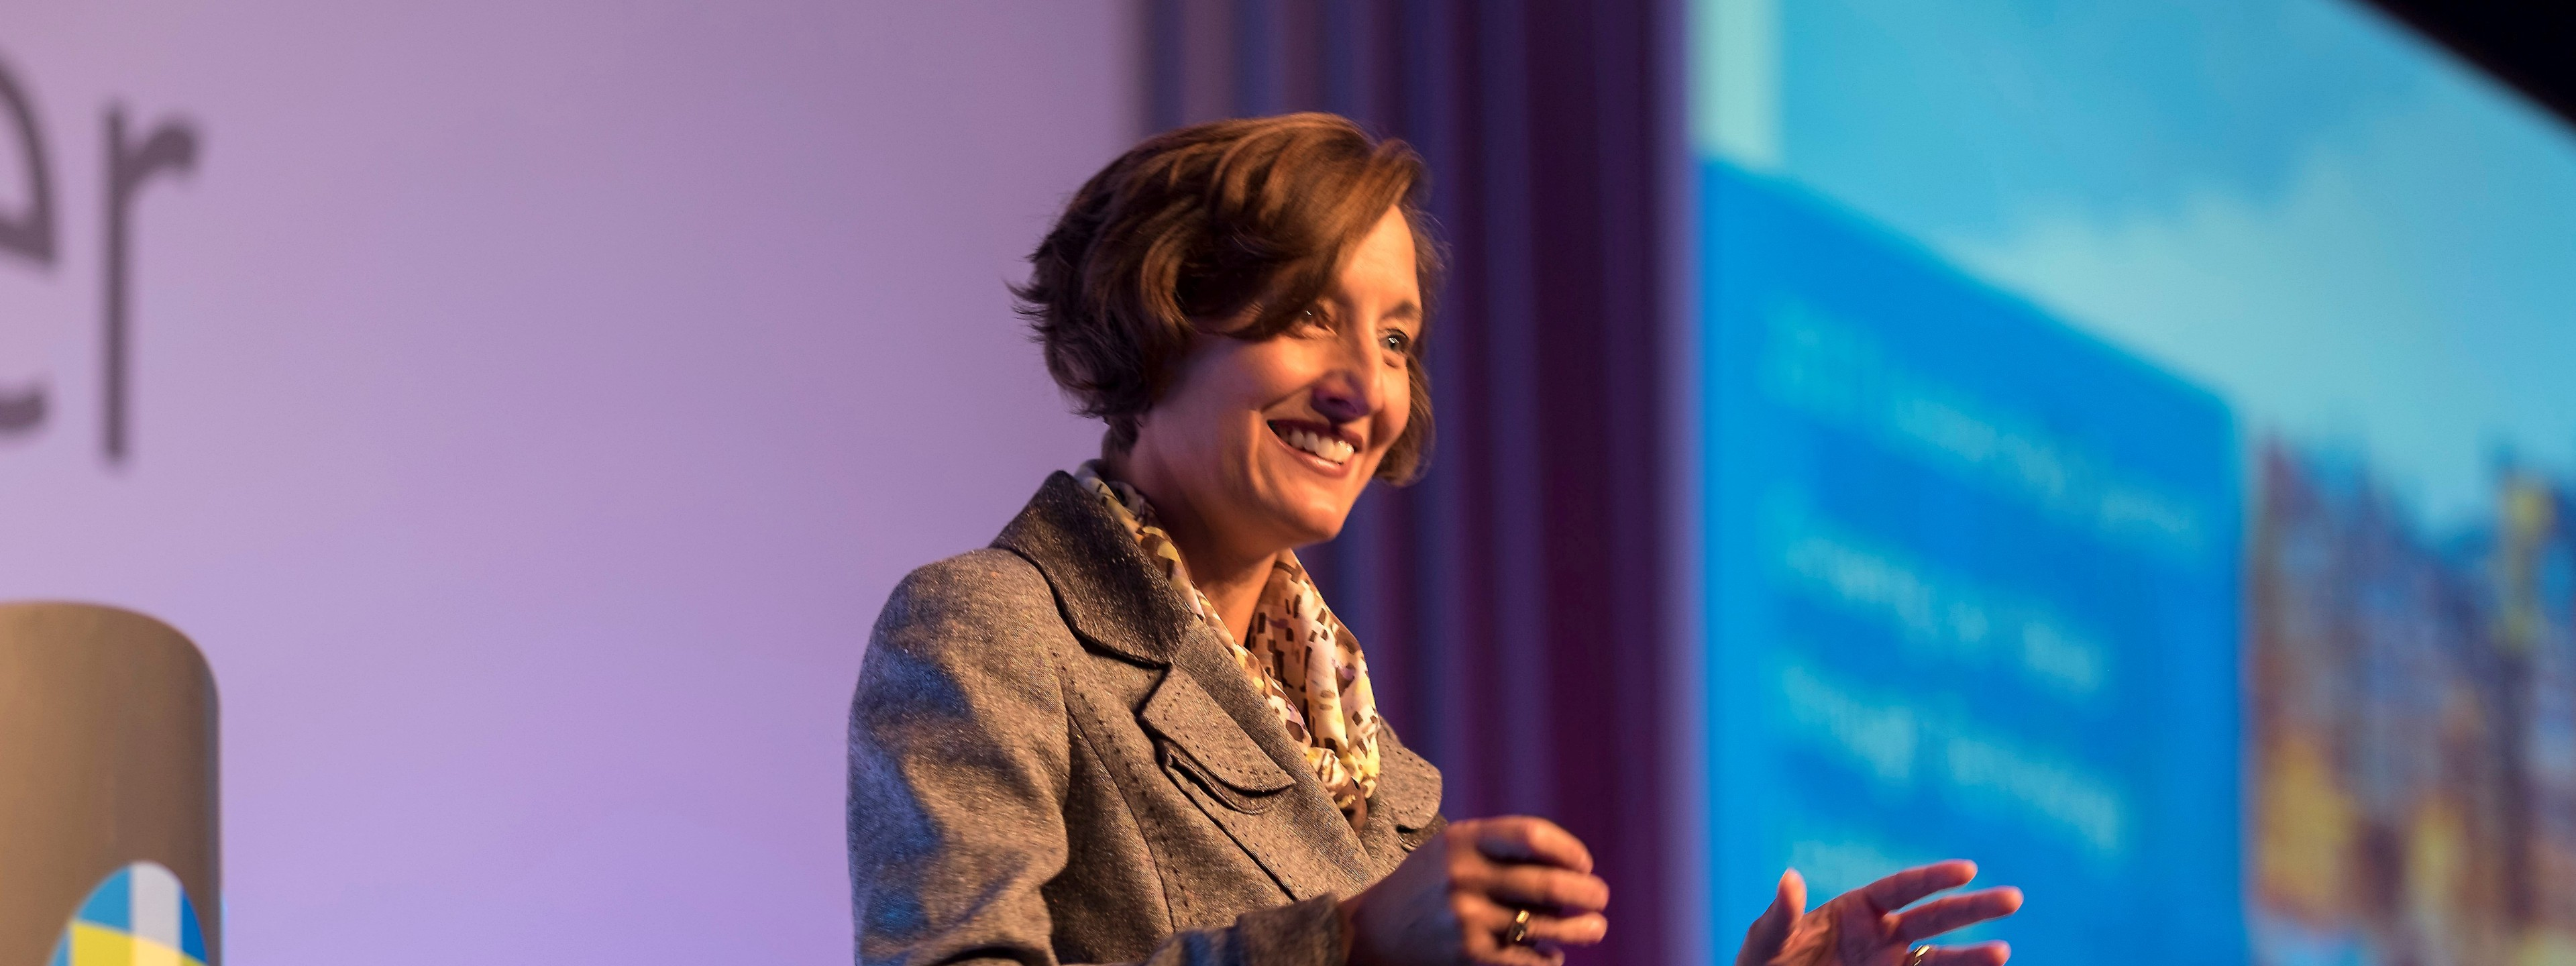 Forbes recognizes Wolters Kluwer as one of America's Best Employers for Women